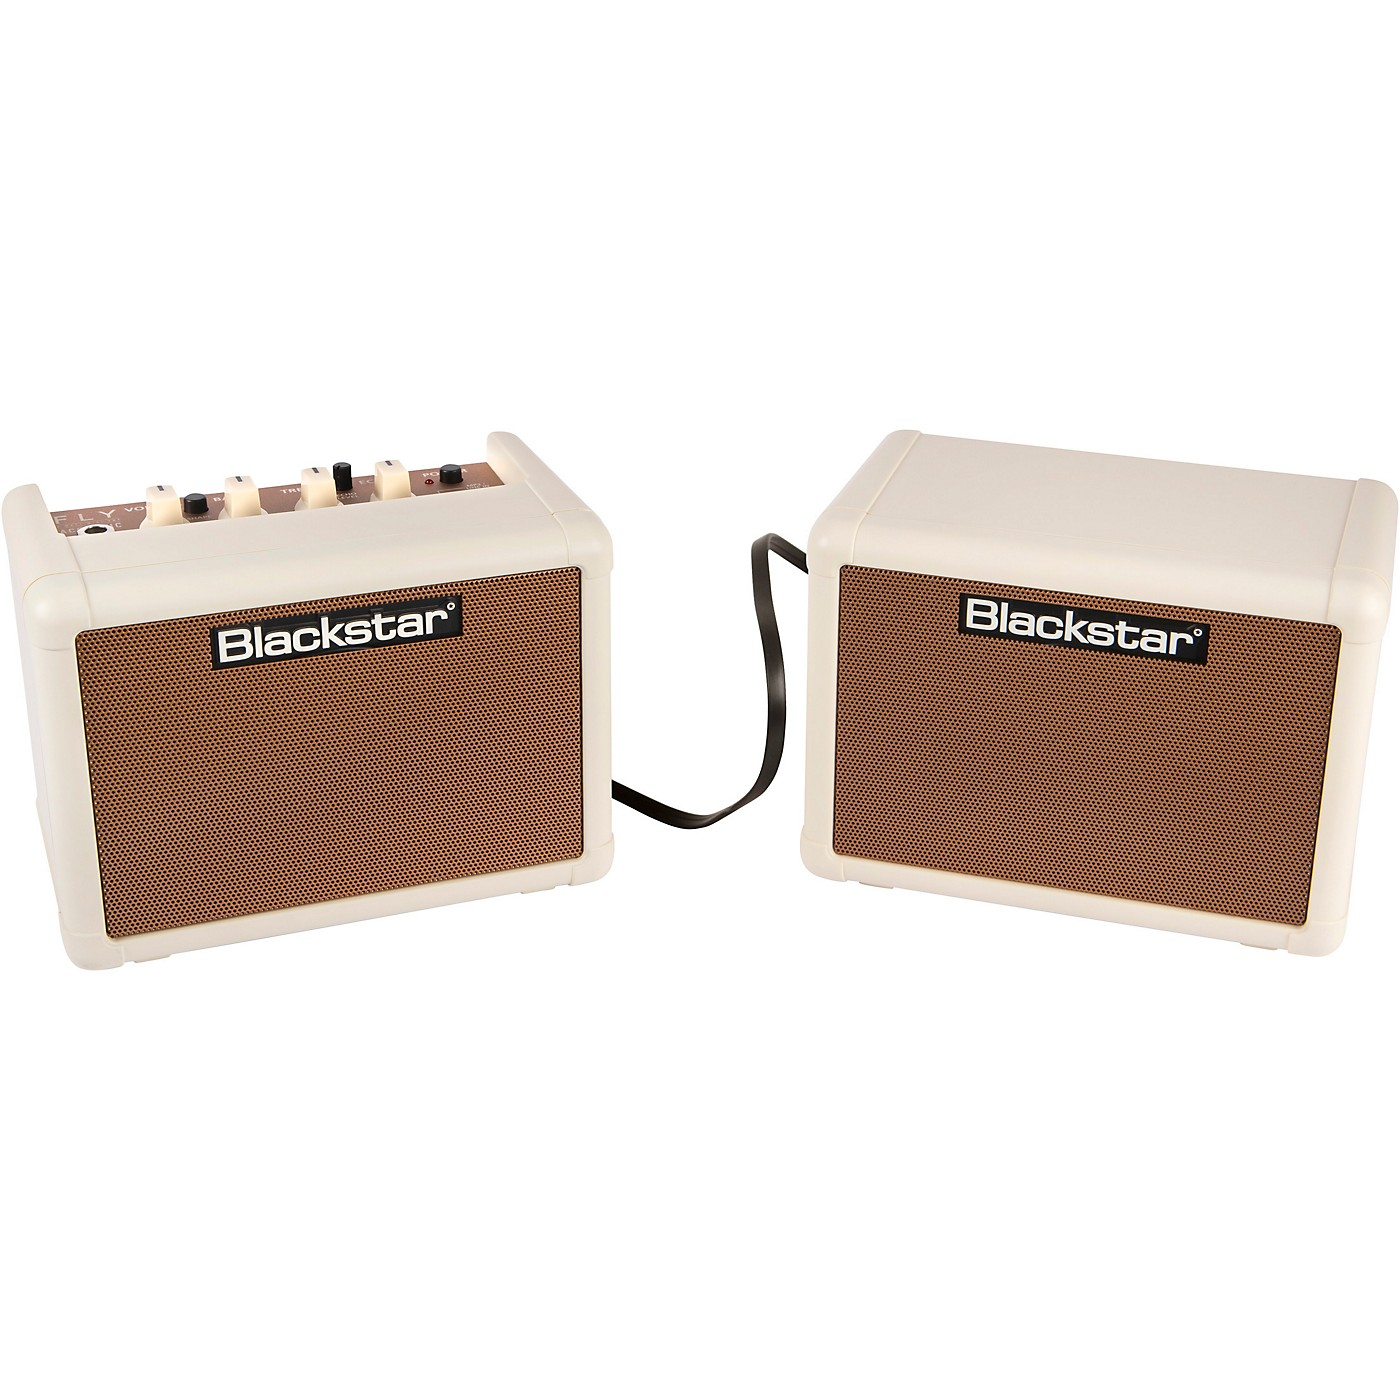 Blackstar Fly 3 Acoustic 3W 1x3 Acoustic Guitar Combo Amp and Fly 3 3W 1x3 Extension Speaker Cabinet thumbnail